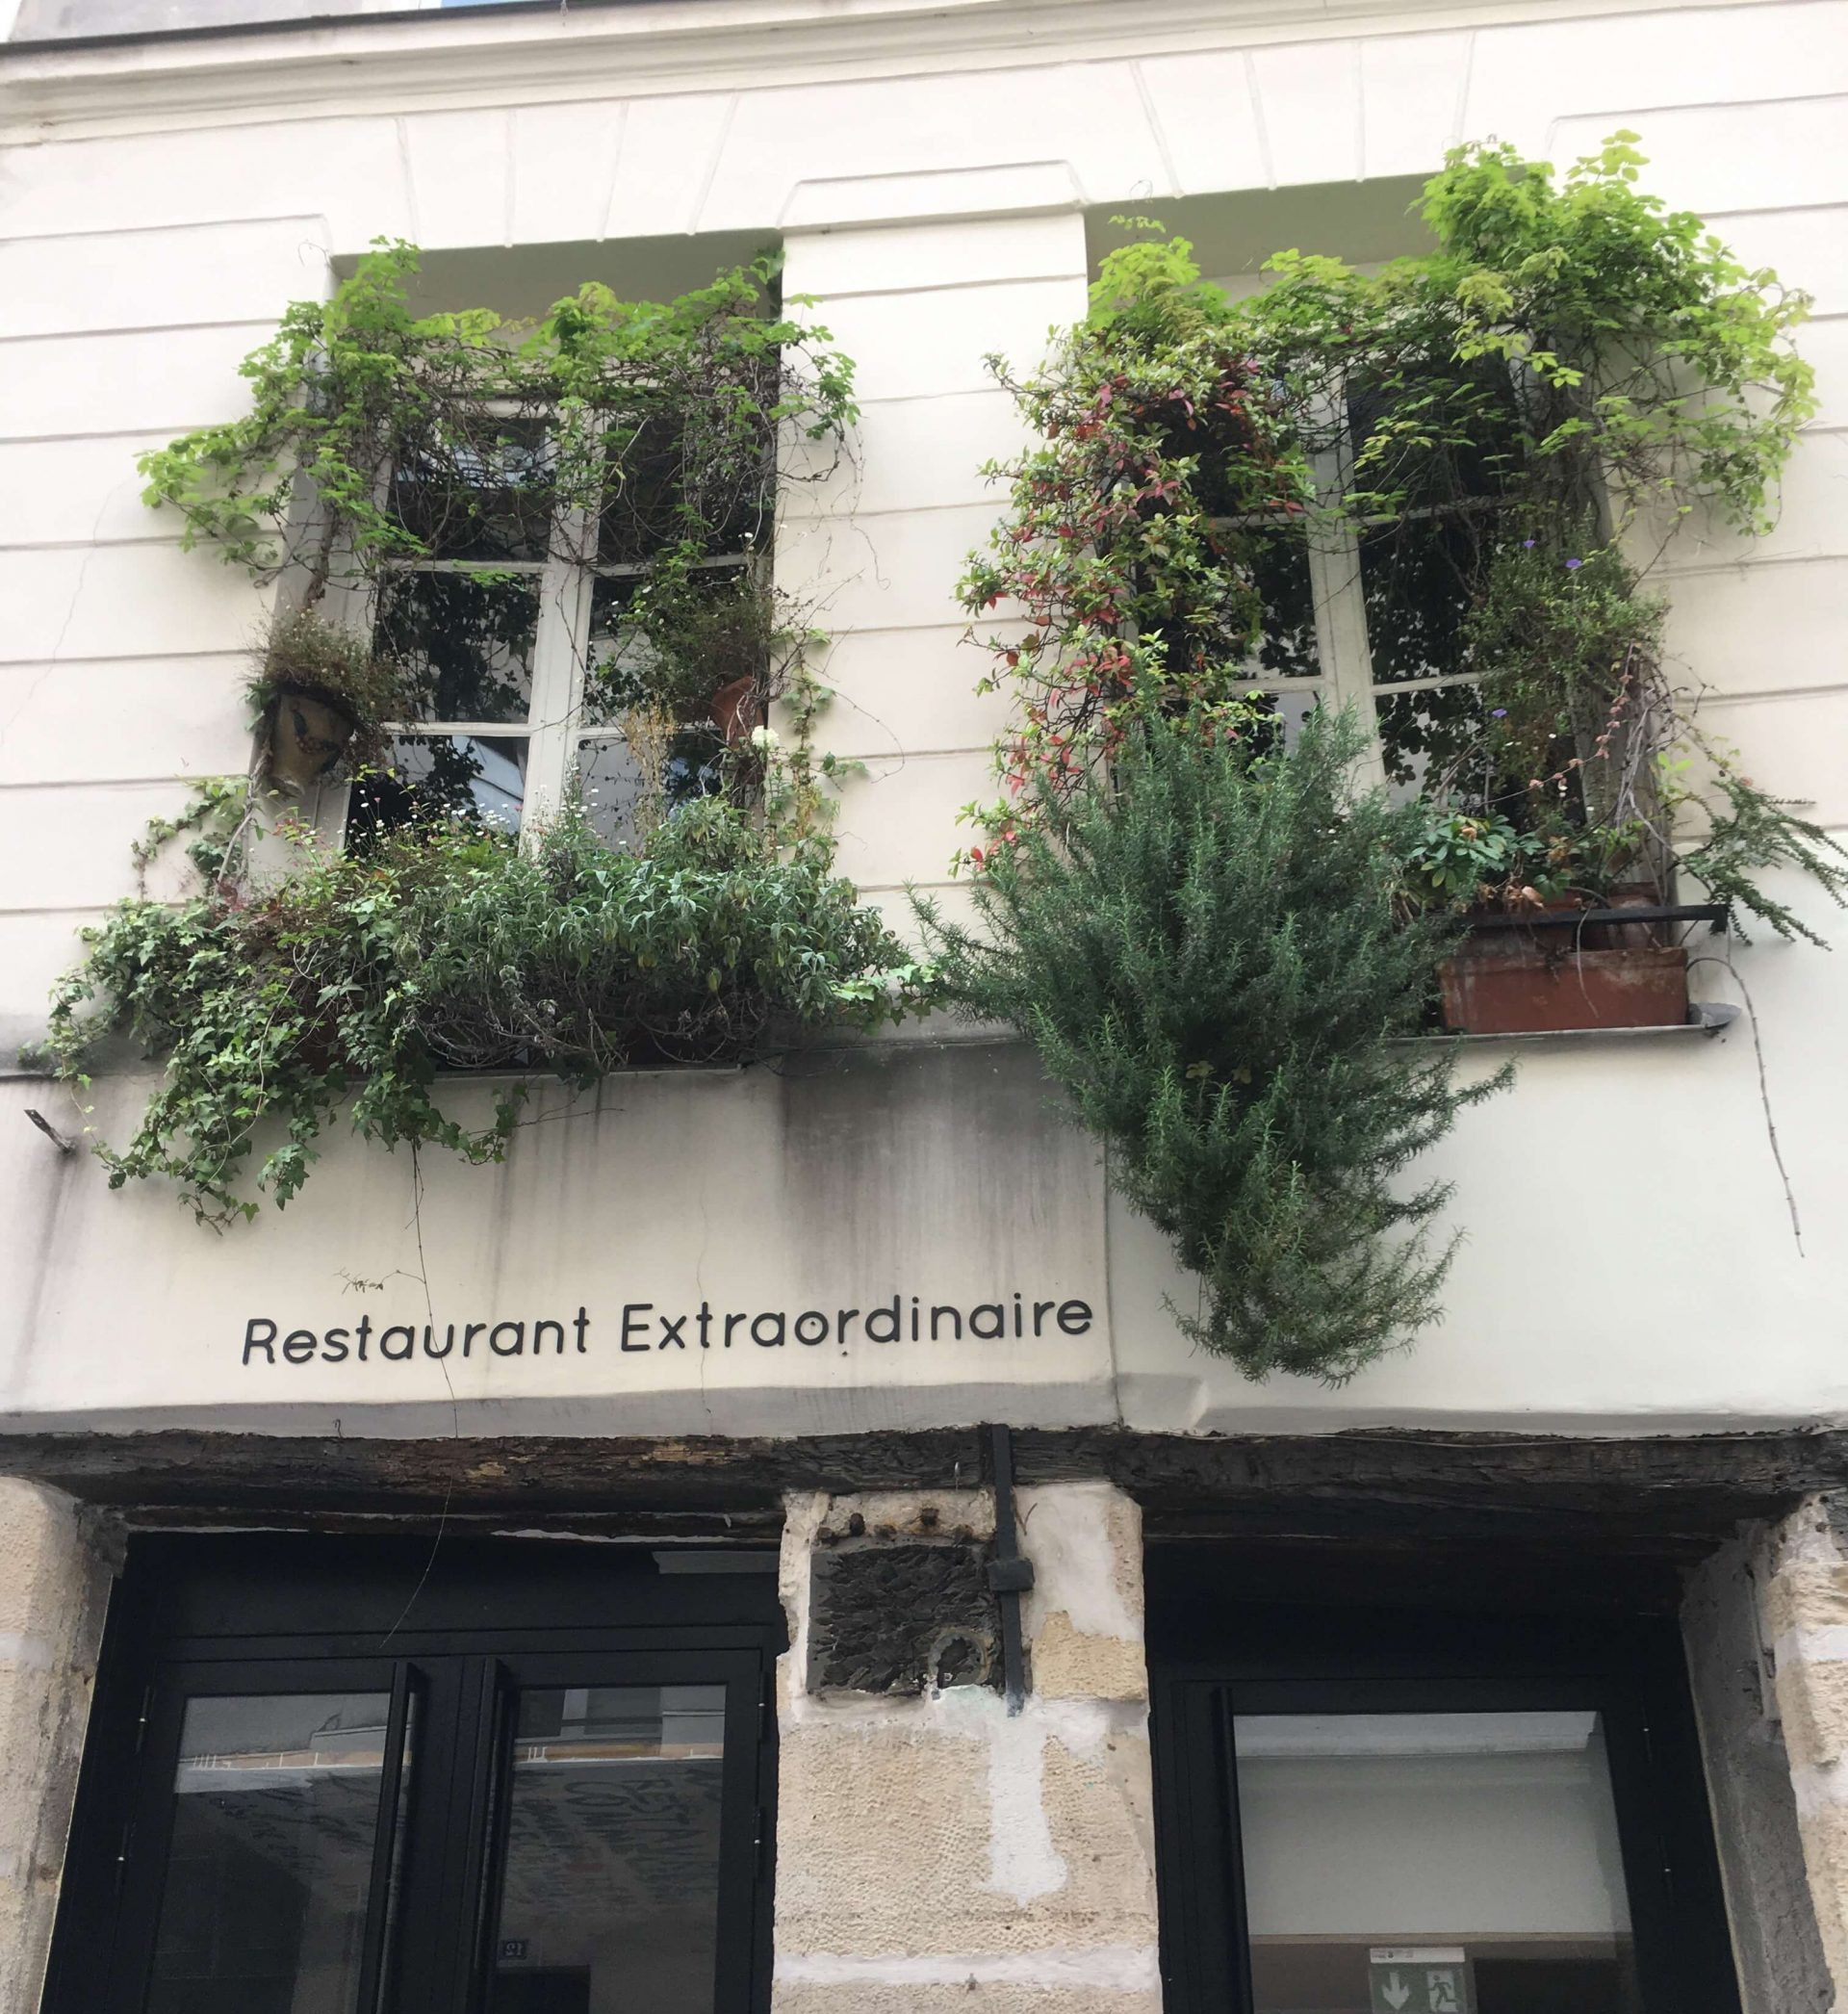 Plants, flowers and vines growing in window boxes on a Parisian apartment